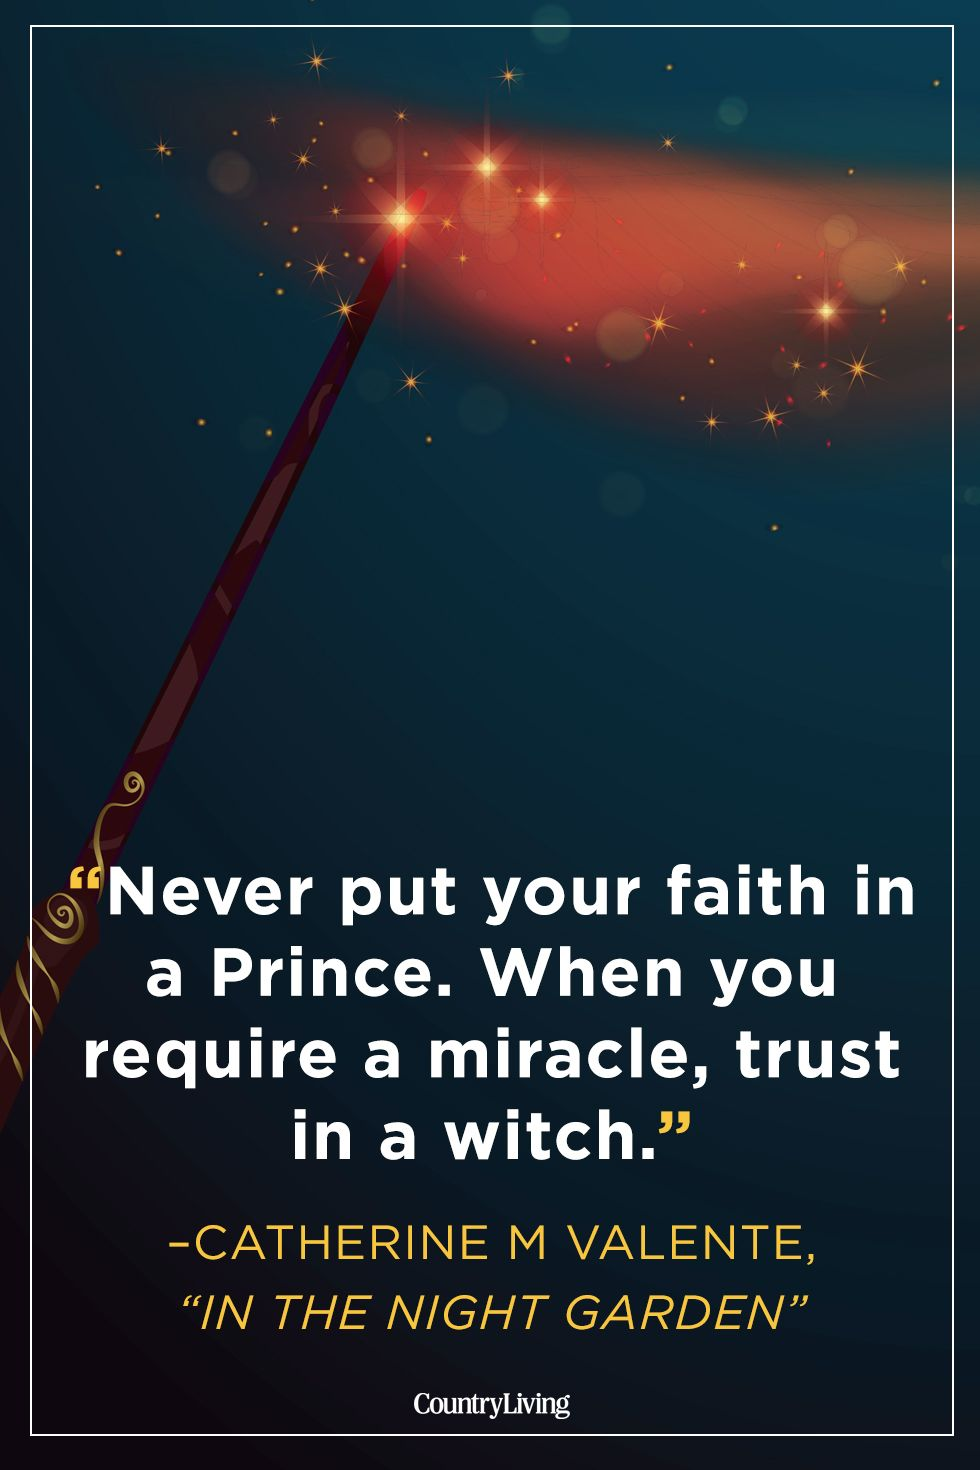 Witch Quotes 25 Witch Quotes   Quotes and Sayings About Witches Witch Quotes